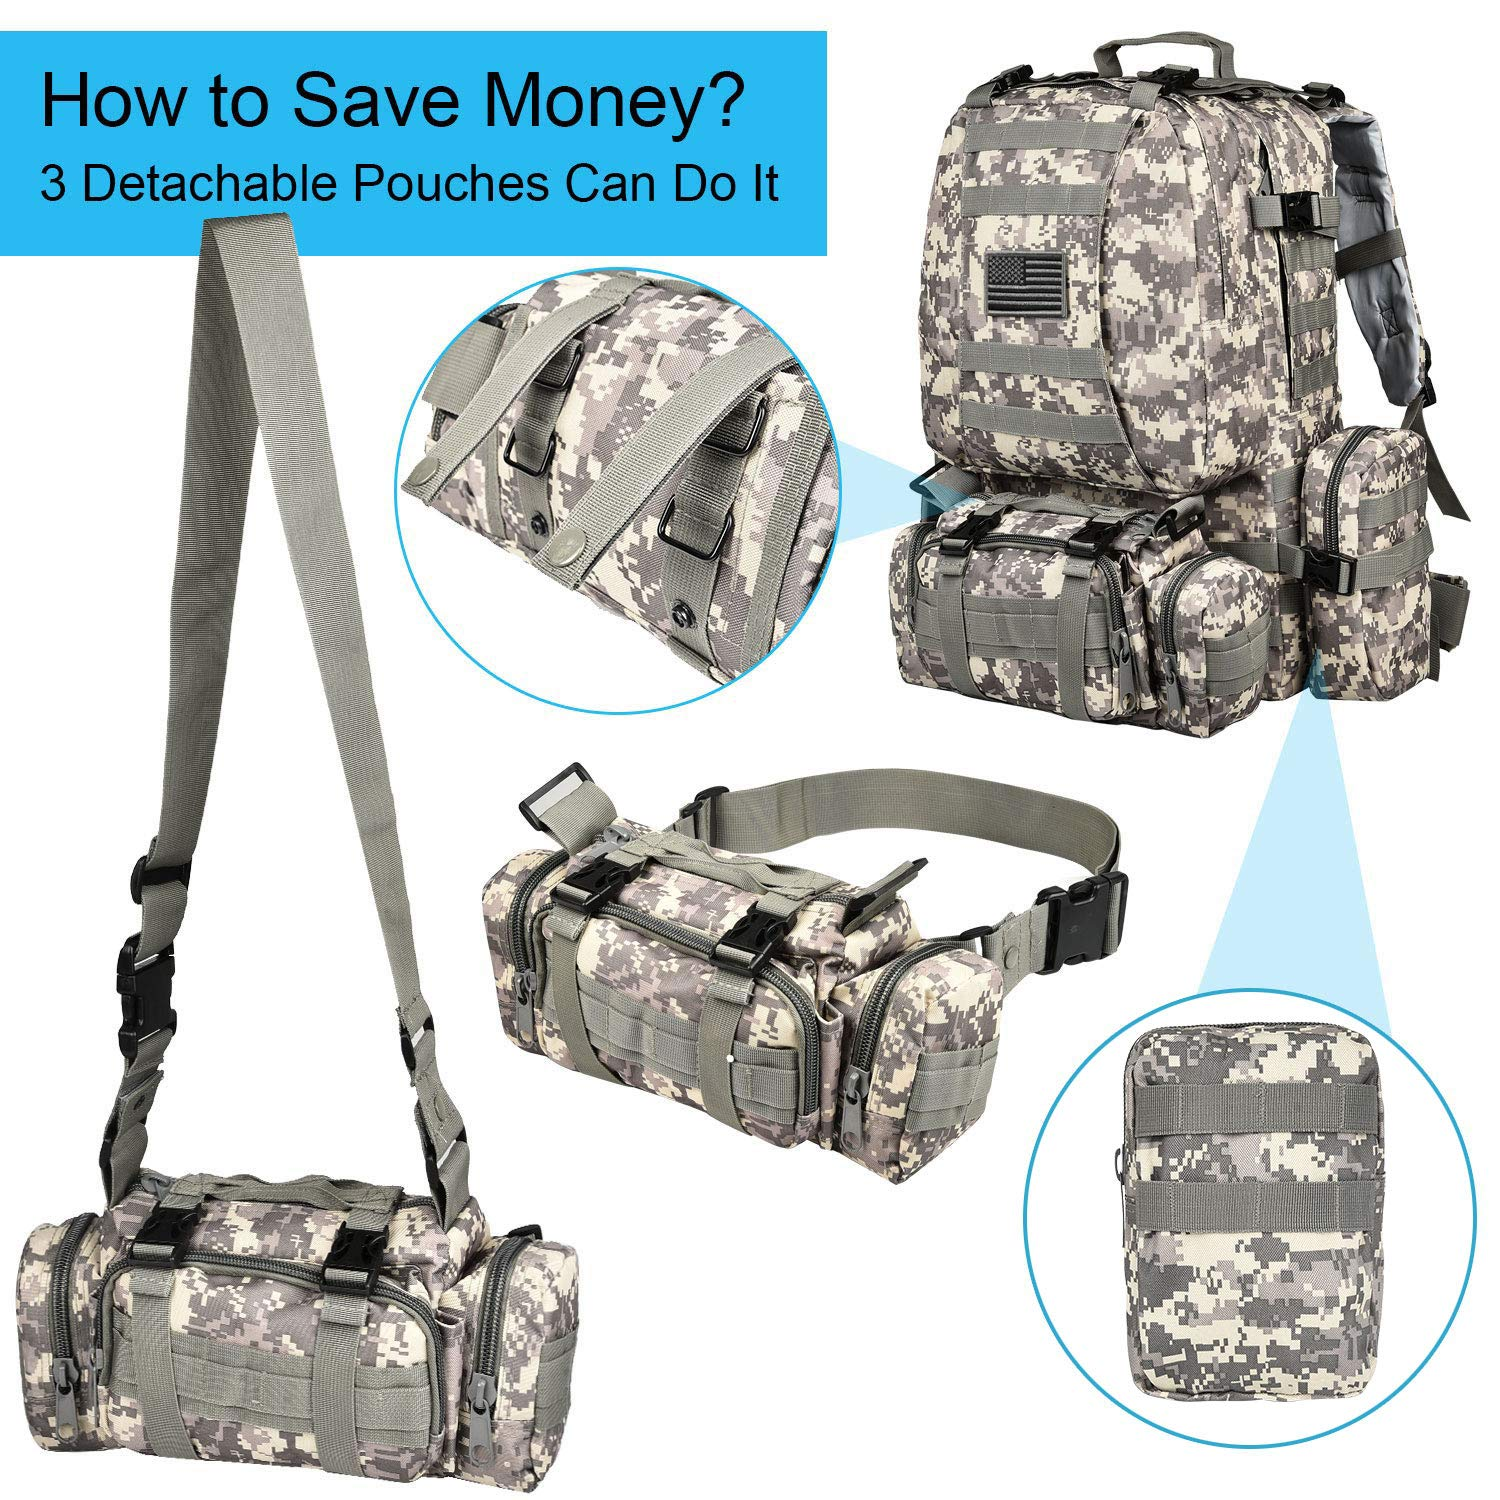 CVLIFE Tactical Military Backpack 60L Built-up Army Rucksacks Outdoor 3 Day Assault Pack Combat Molle Backpack for Hunting Hiking Fishing with Flag Patch Camouflage ACU by CVLIFE (Image #5)